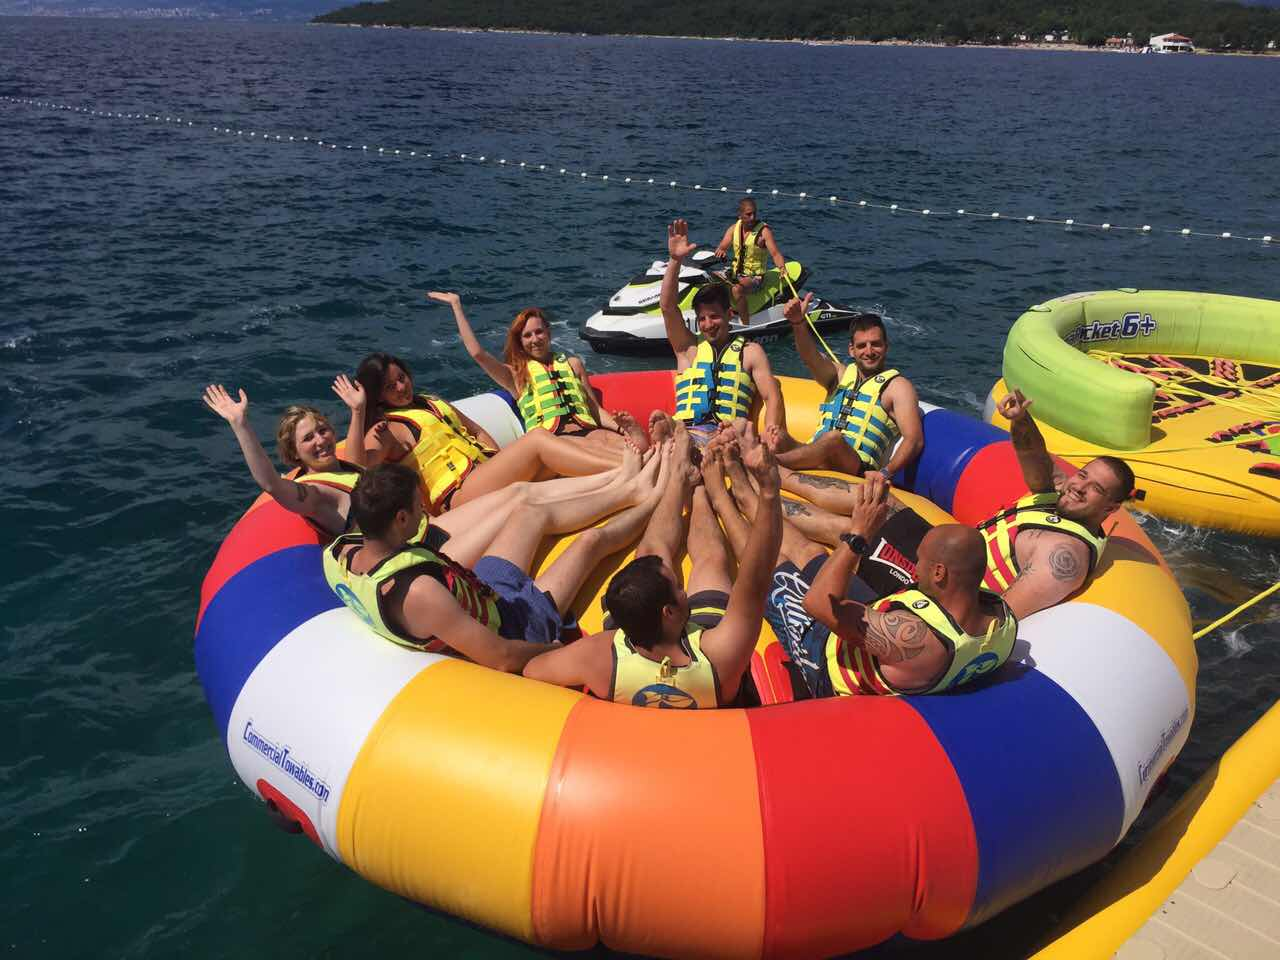 twister, Watersports - Njivice, Malinska, Baška - Krk